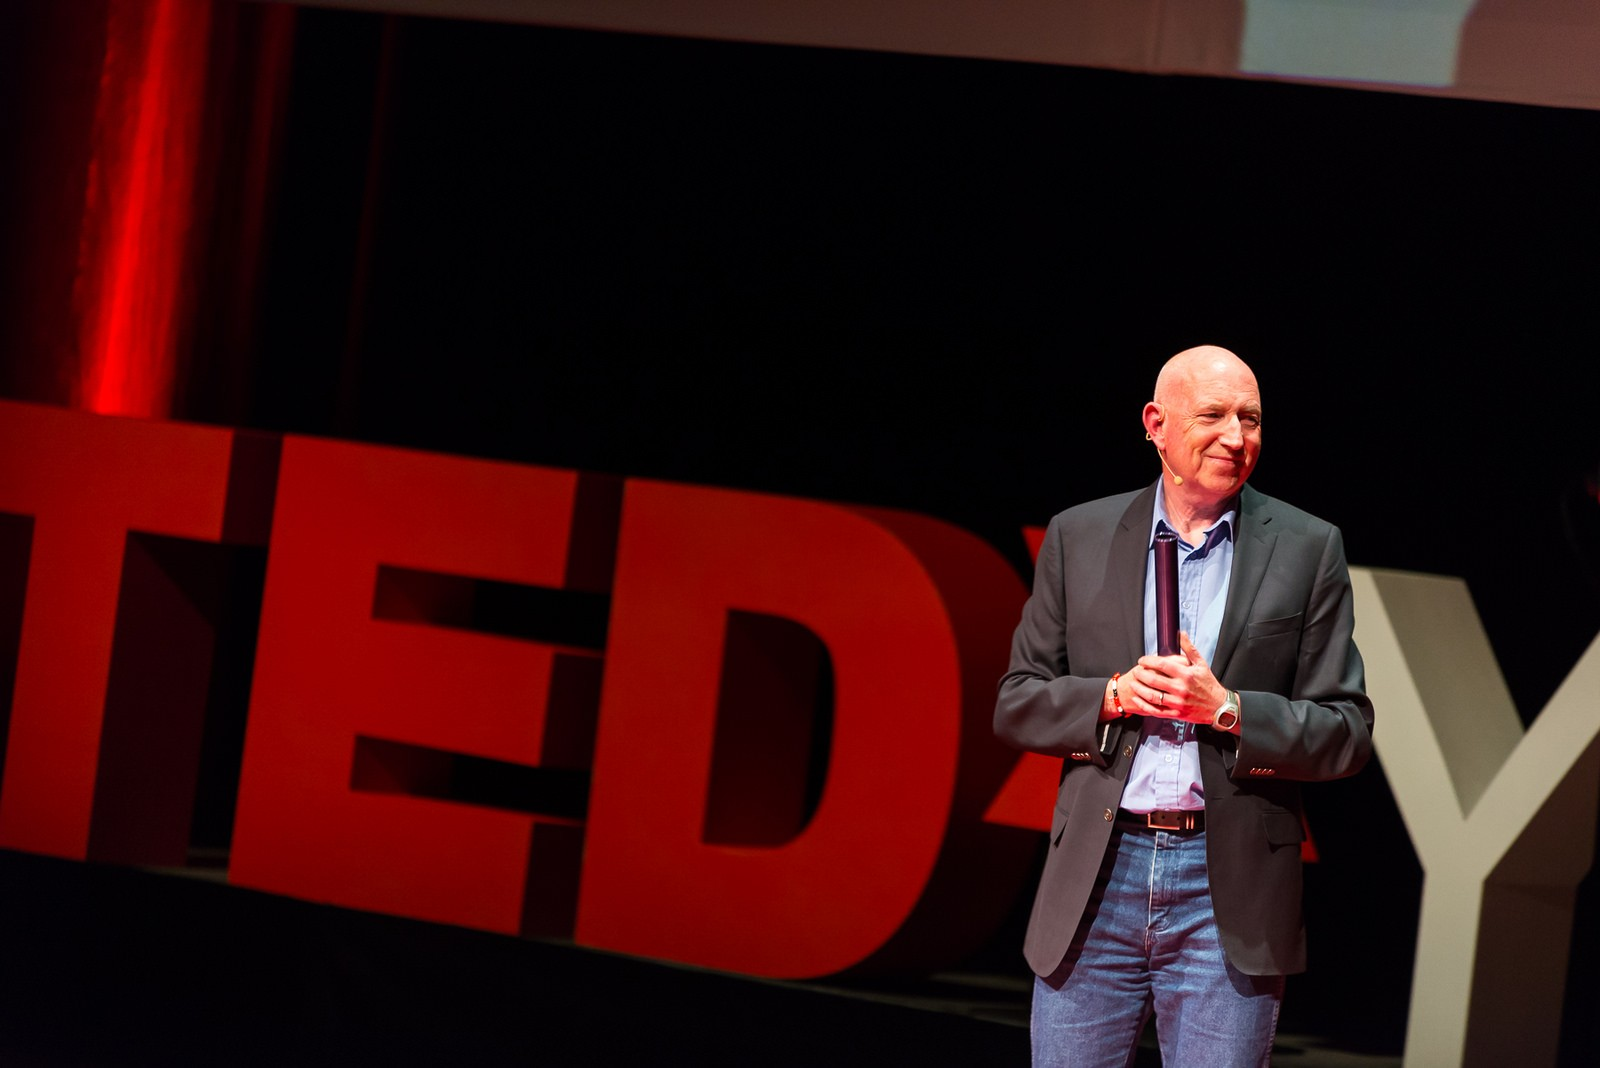 TEDx Reflections From Martin Parnell